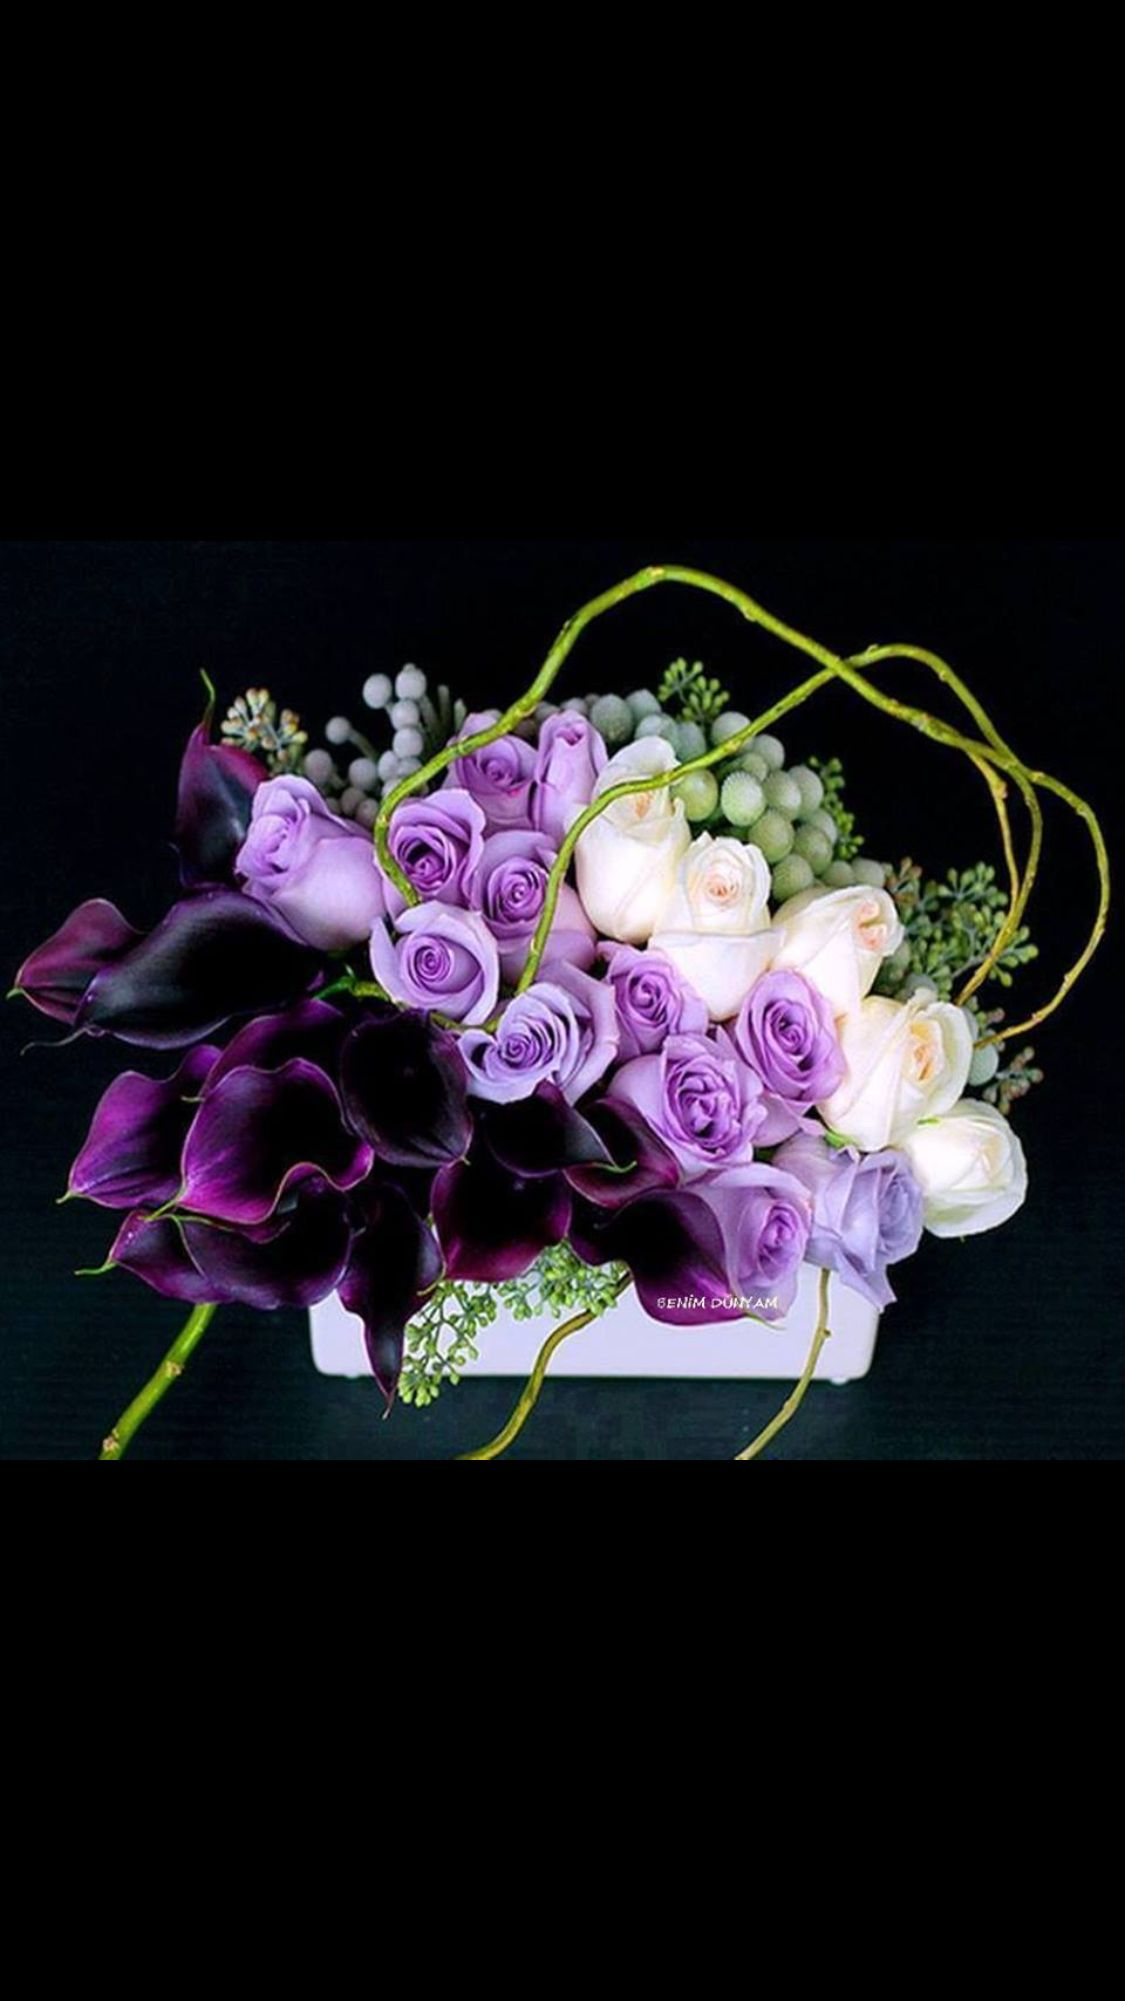 Composition florale | fresh flowers arrangement | Floral ...